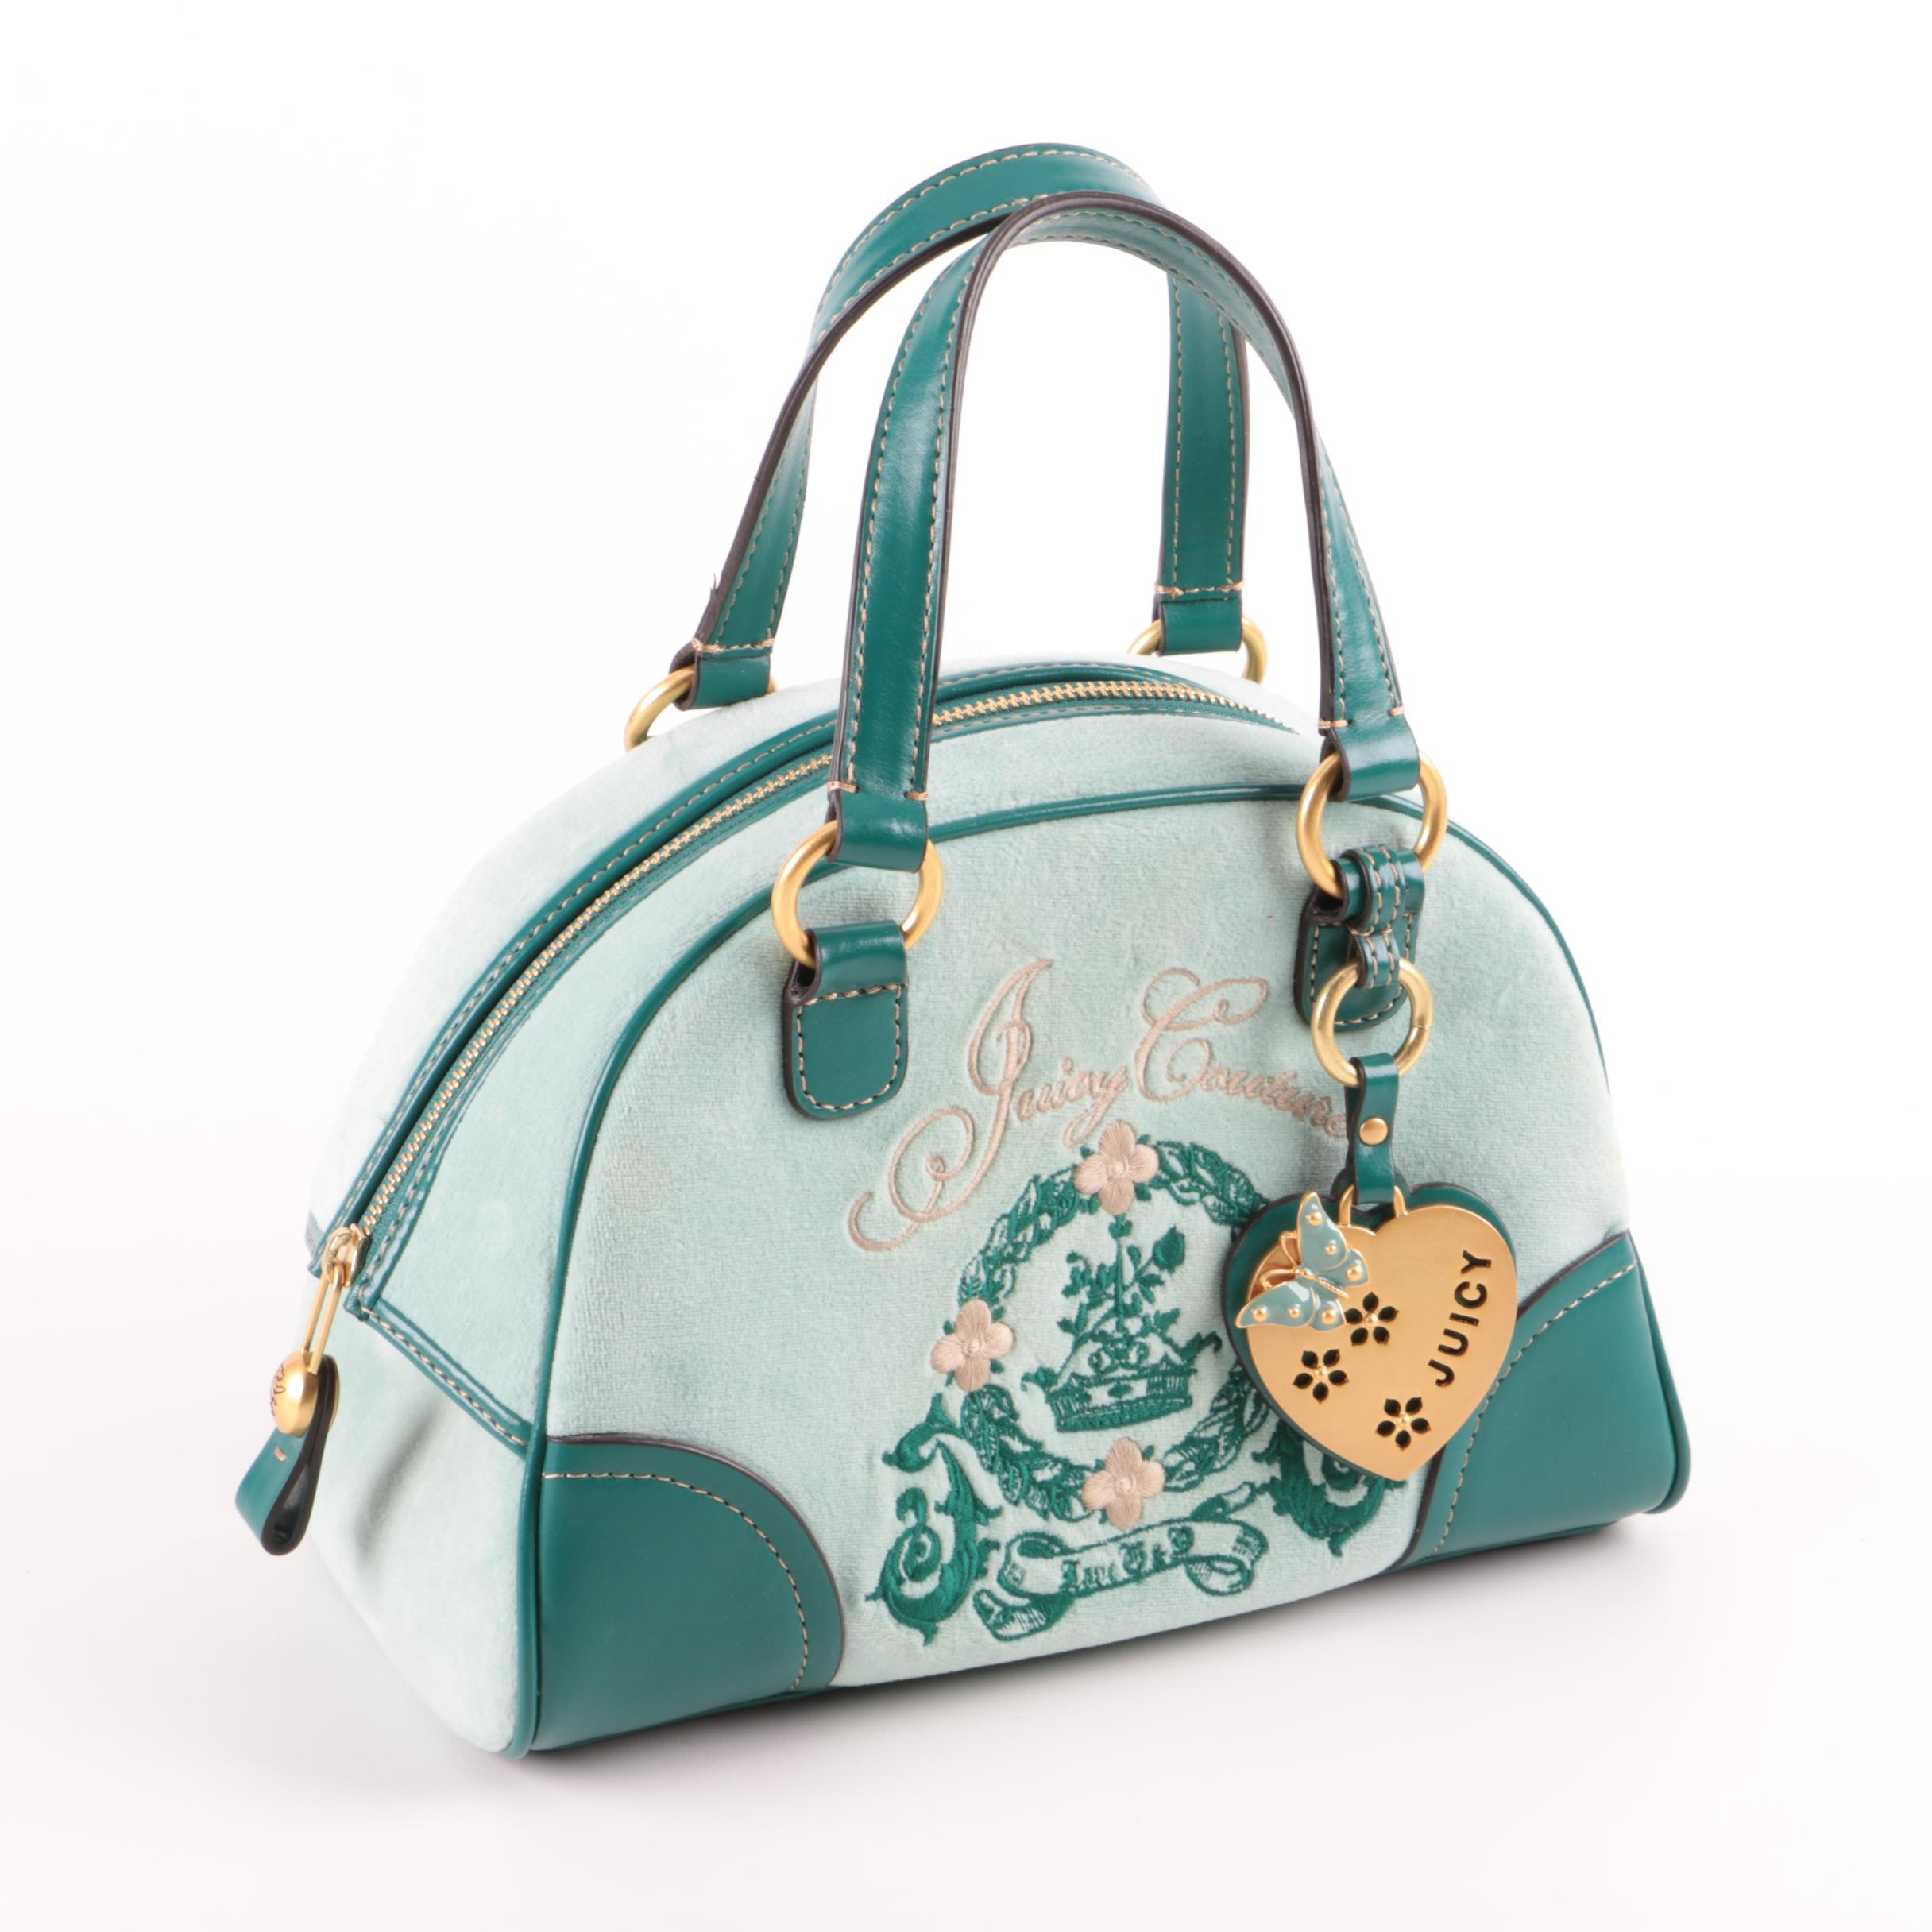 Juicy Couture Leather and Fabric Handbag